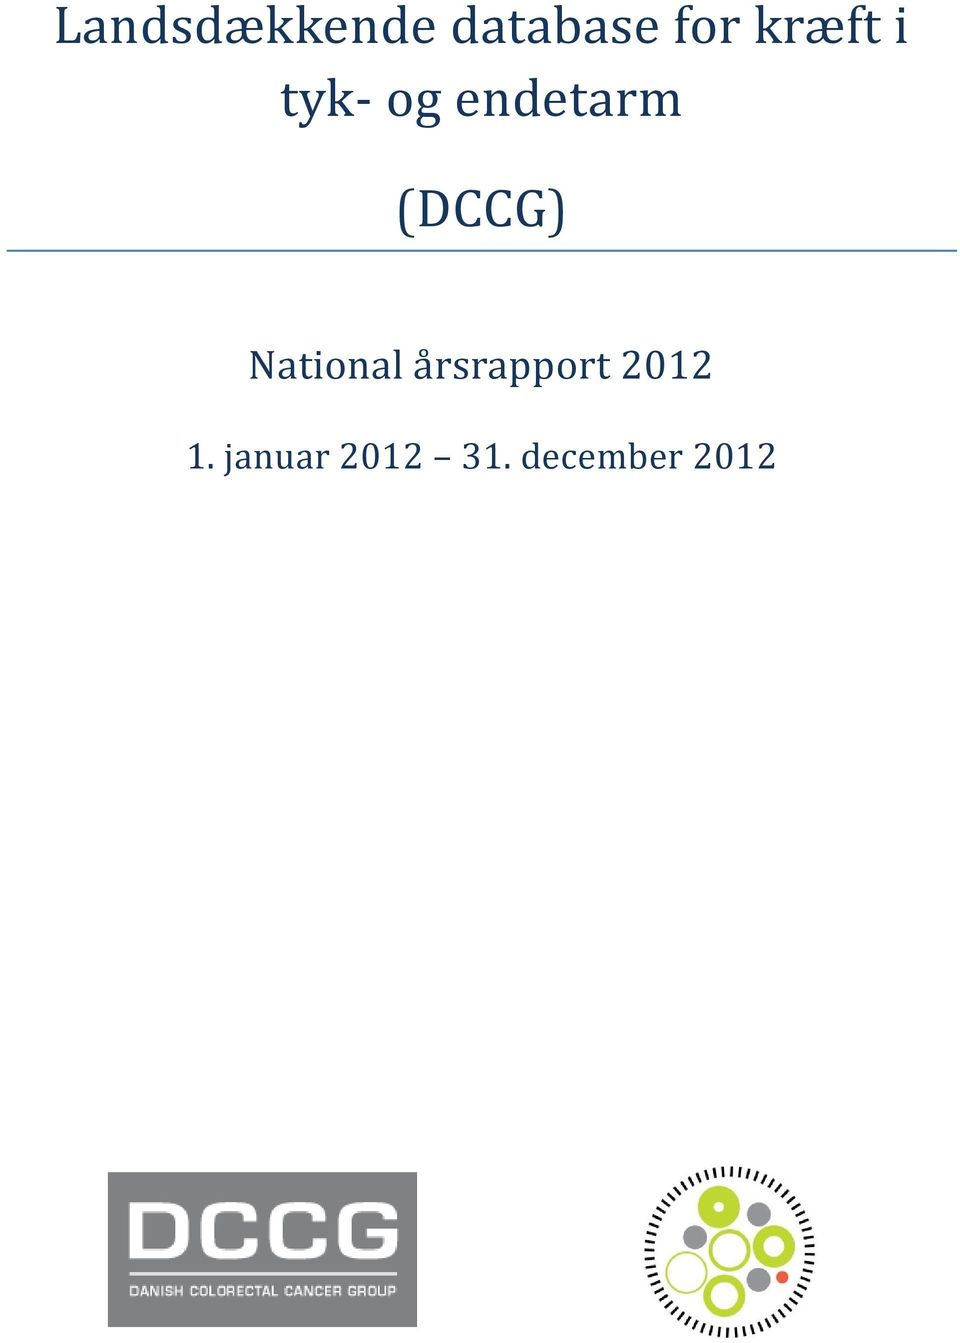 (DCCG) National a rsrapport